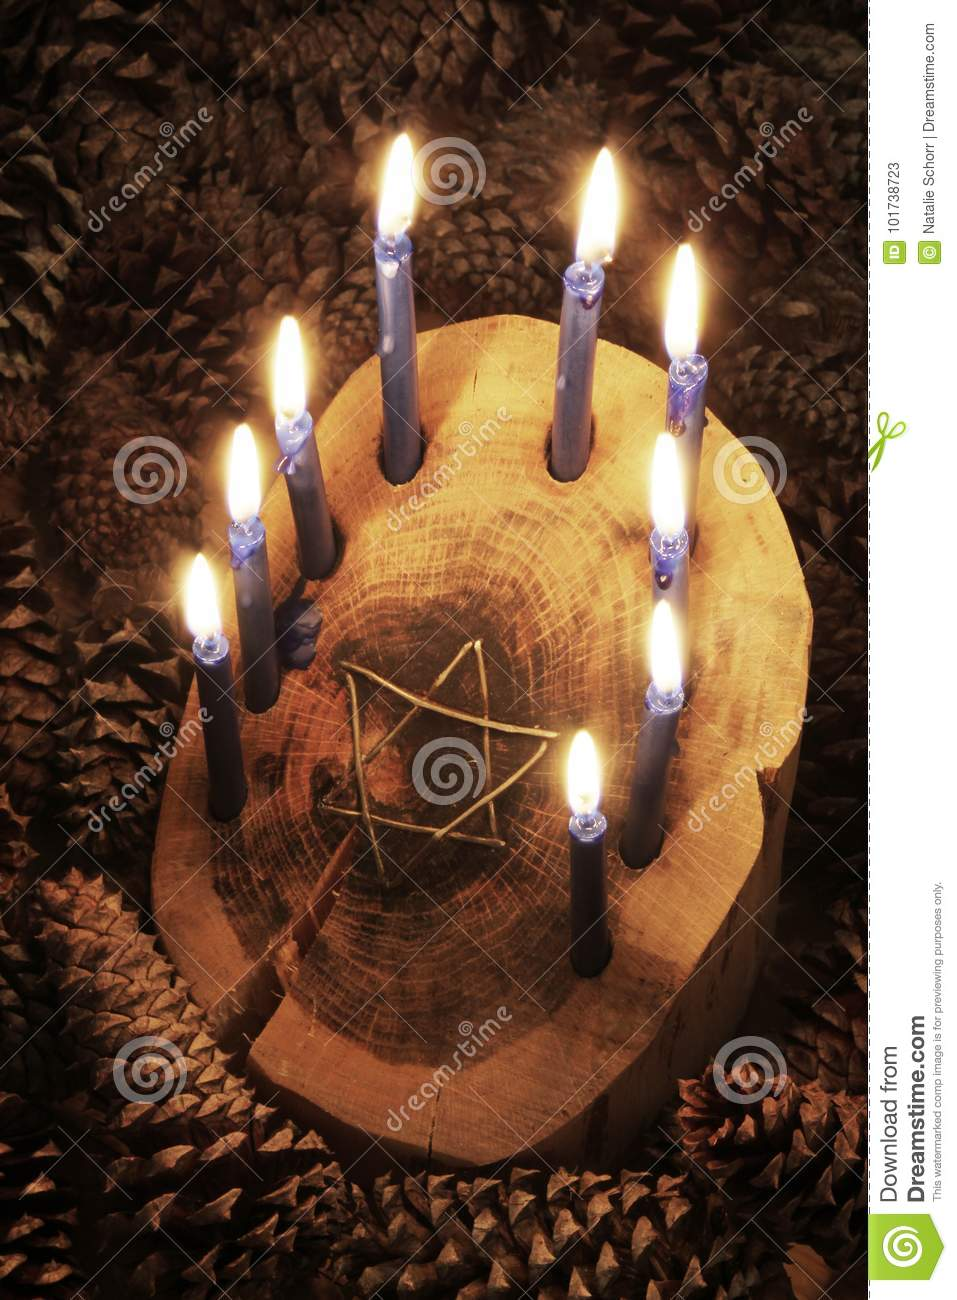 Crafted Rustic Wood Log Menorah Surrounded By Pine Cones With Inset Star Of David Candles Lighted Stock Image Image Of Star Crafted 101738723